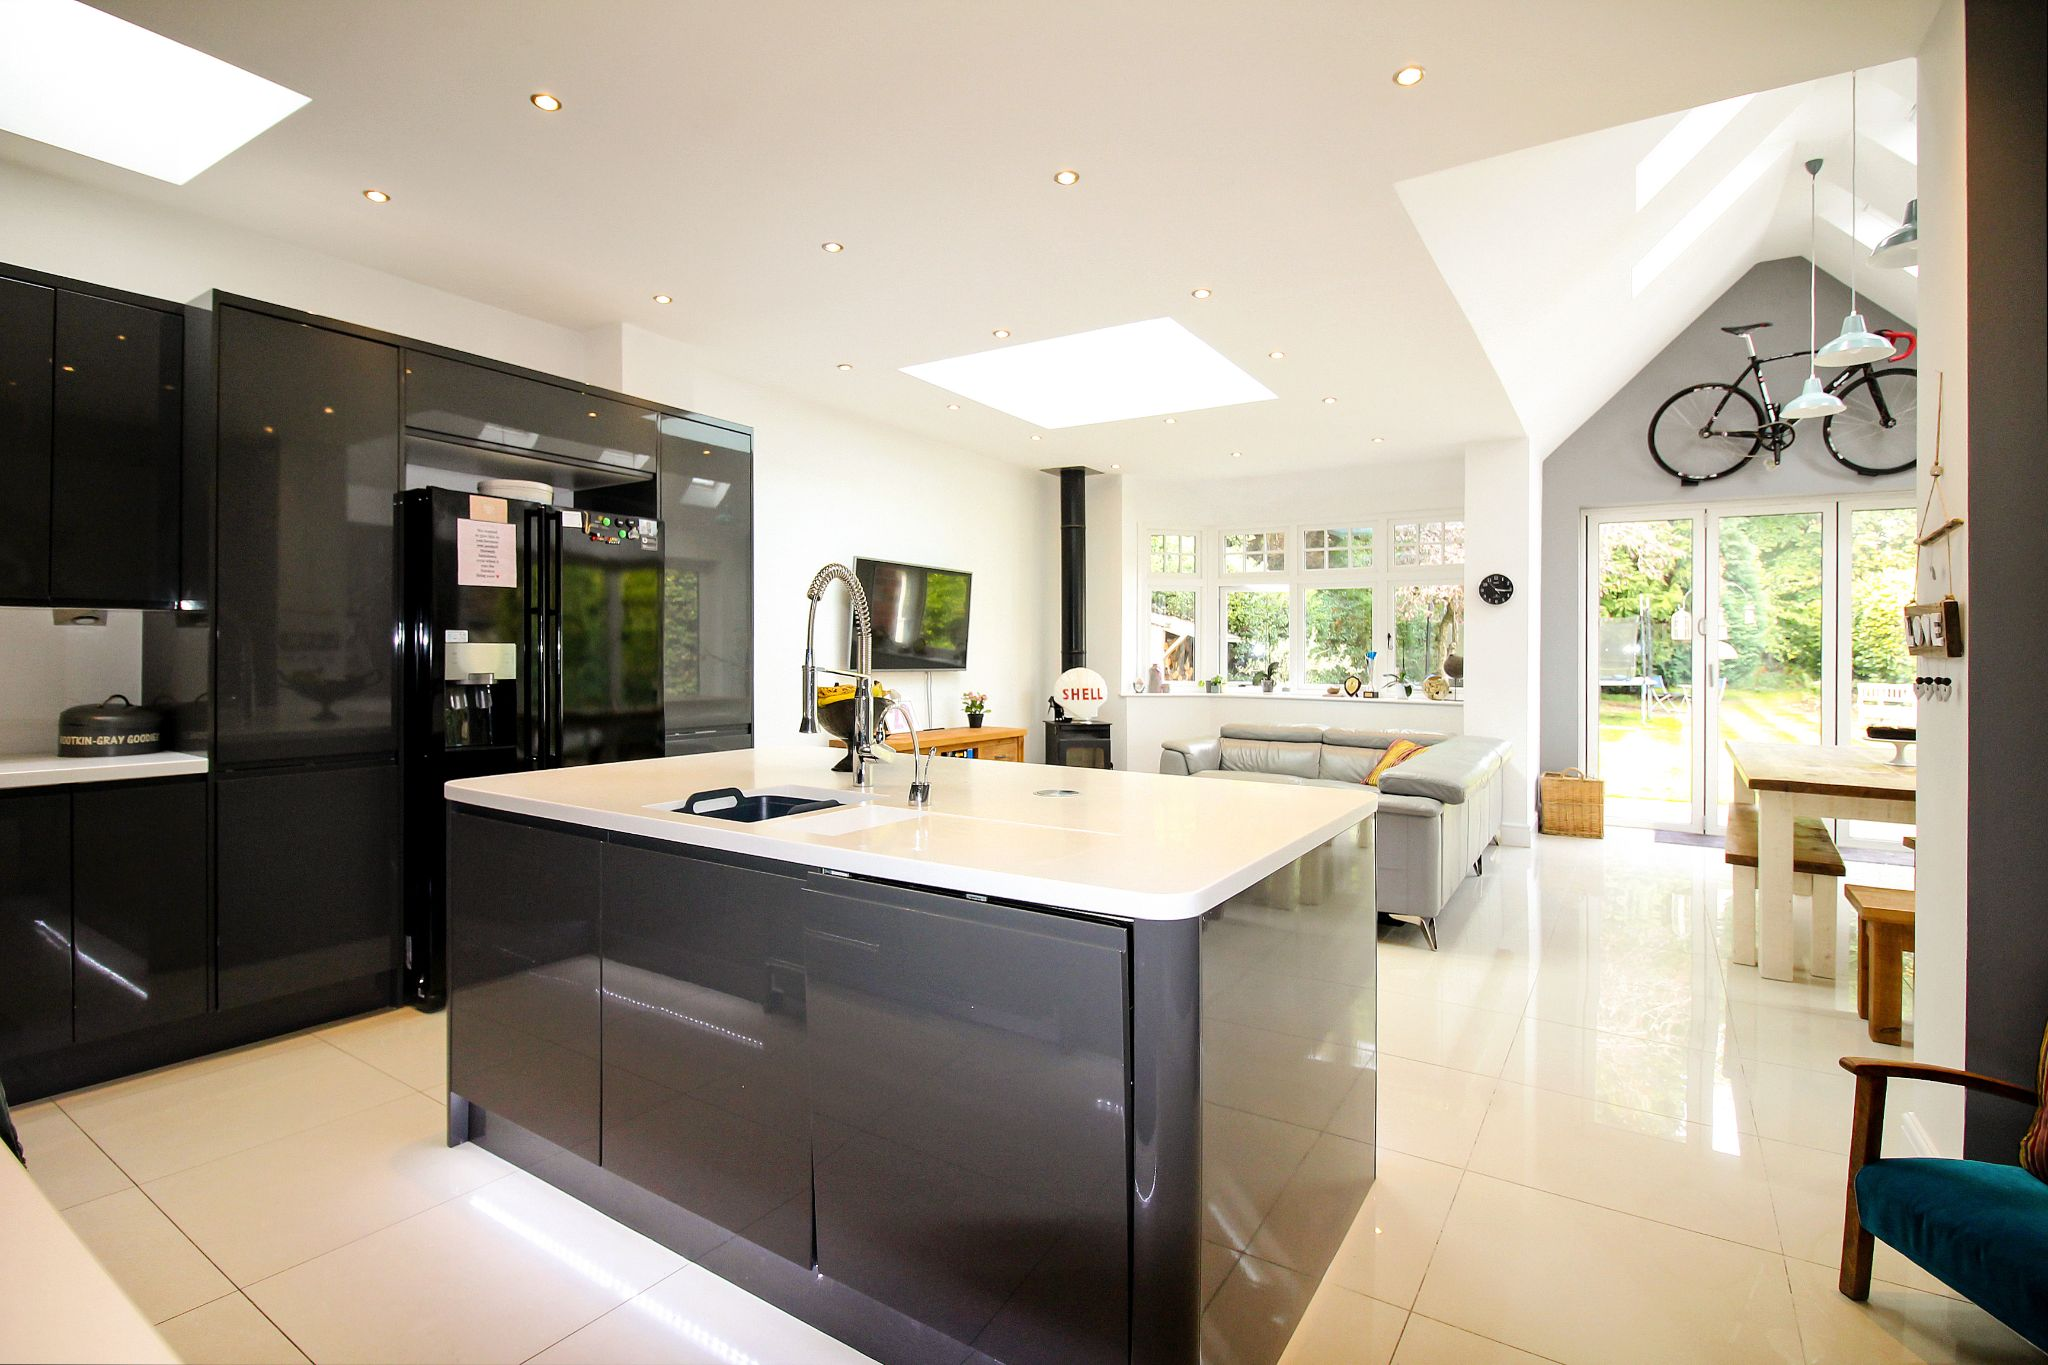 5 bedroom detached house For Sale in Solihull - Photograph 2.